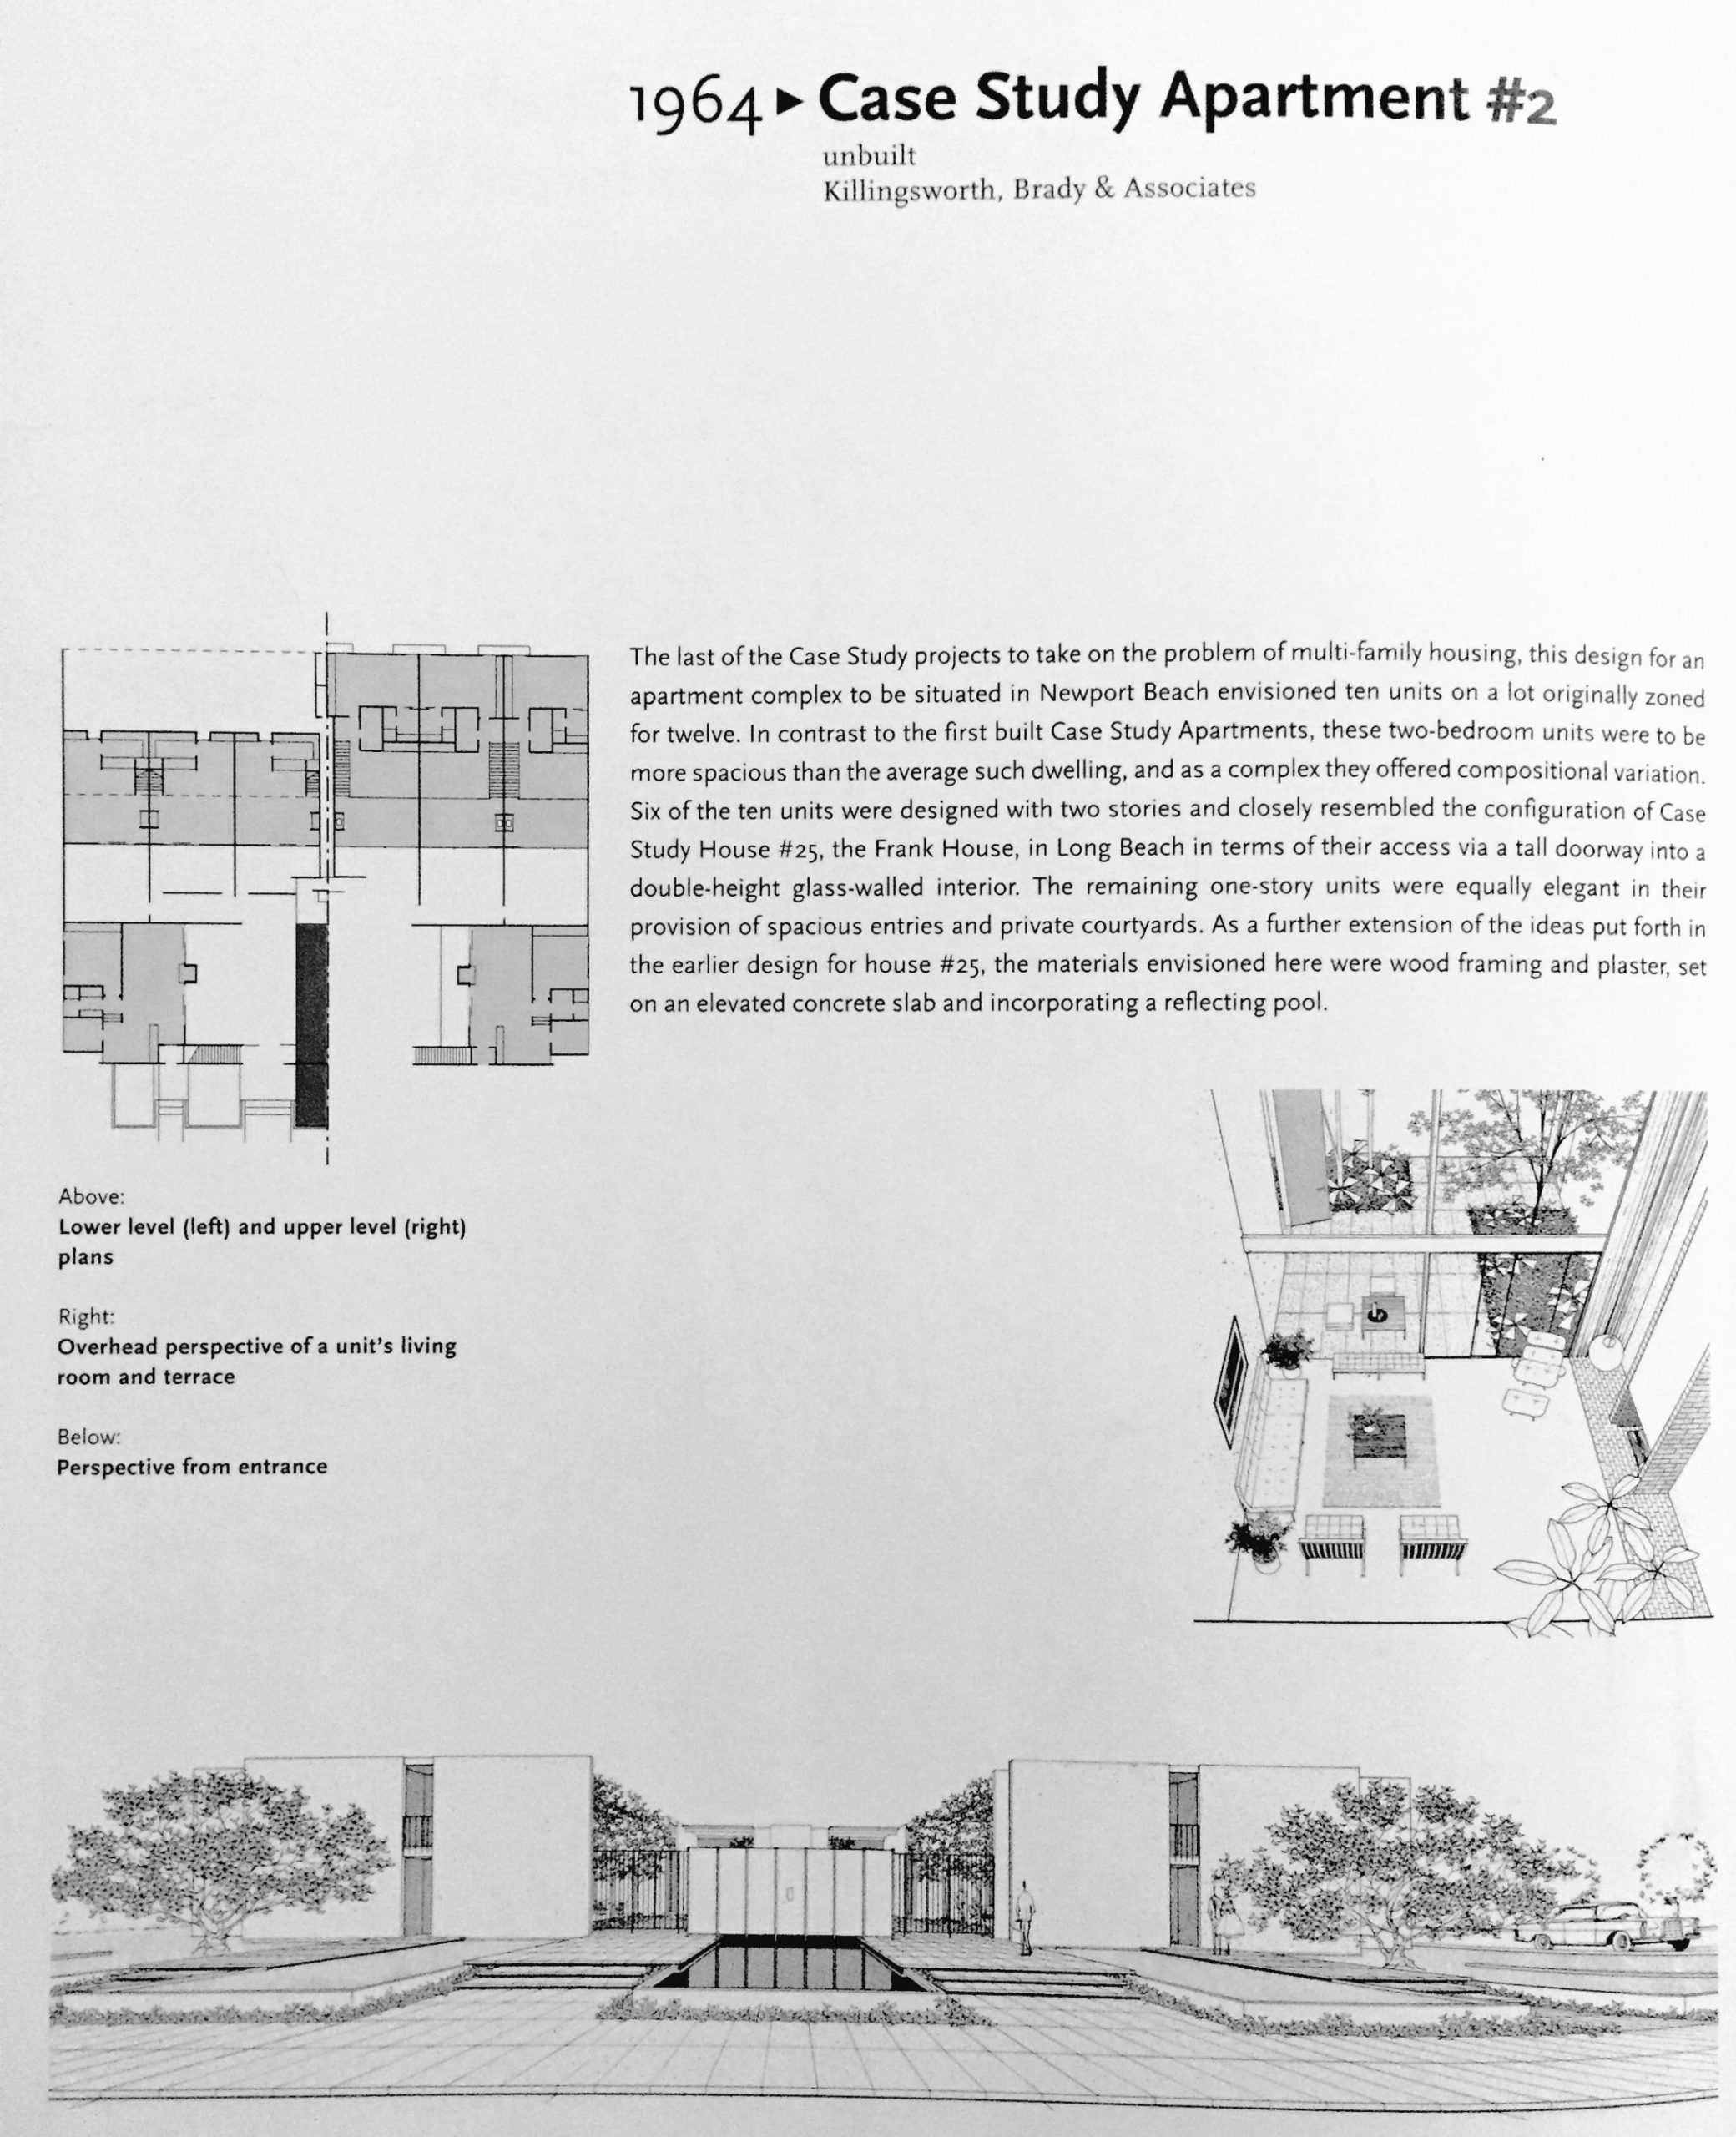 Case Study Apartment #11 11 Unbuilt